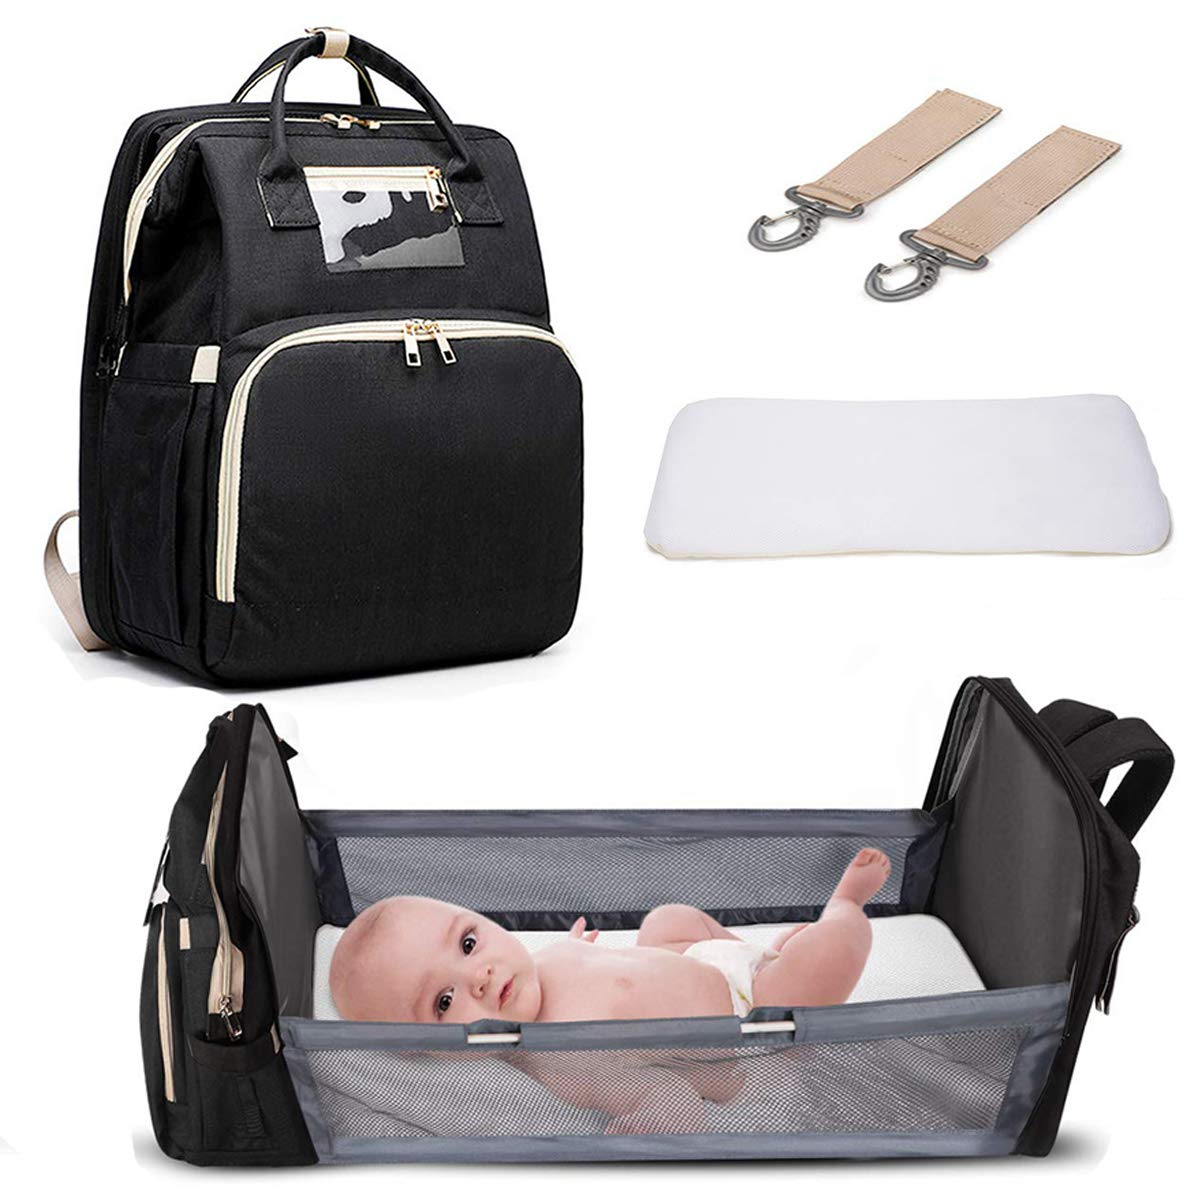 3 in 1 Travel Foldable Baby Bed Backpack Diaper Bag Waterproof Portable Diaper Changing Station, Large Capacity Mommy Bag